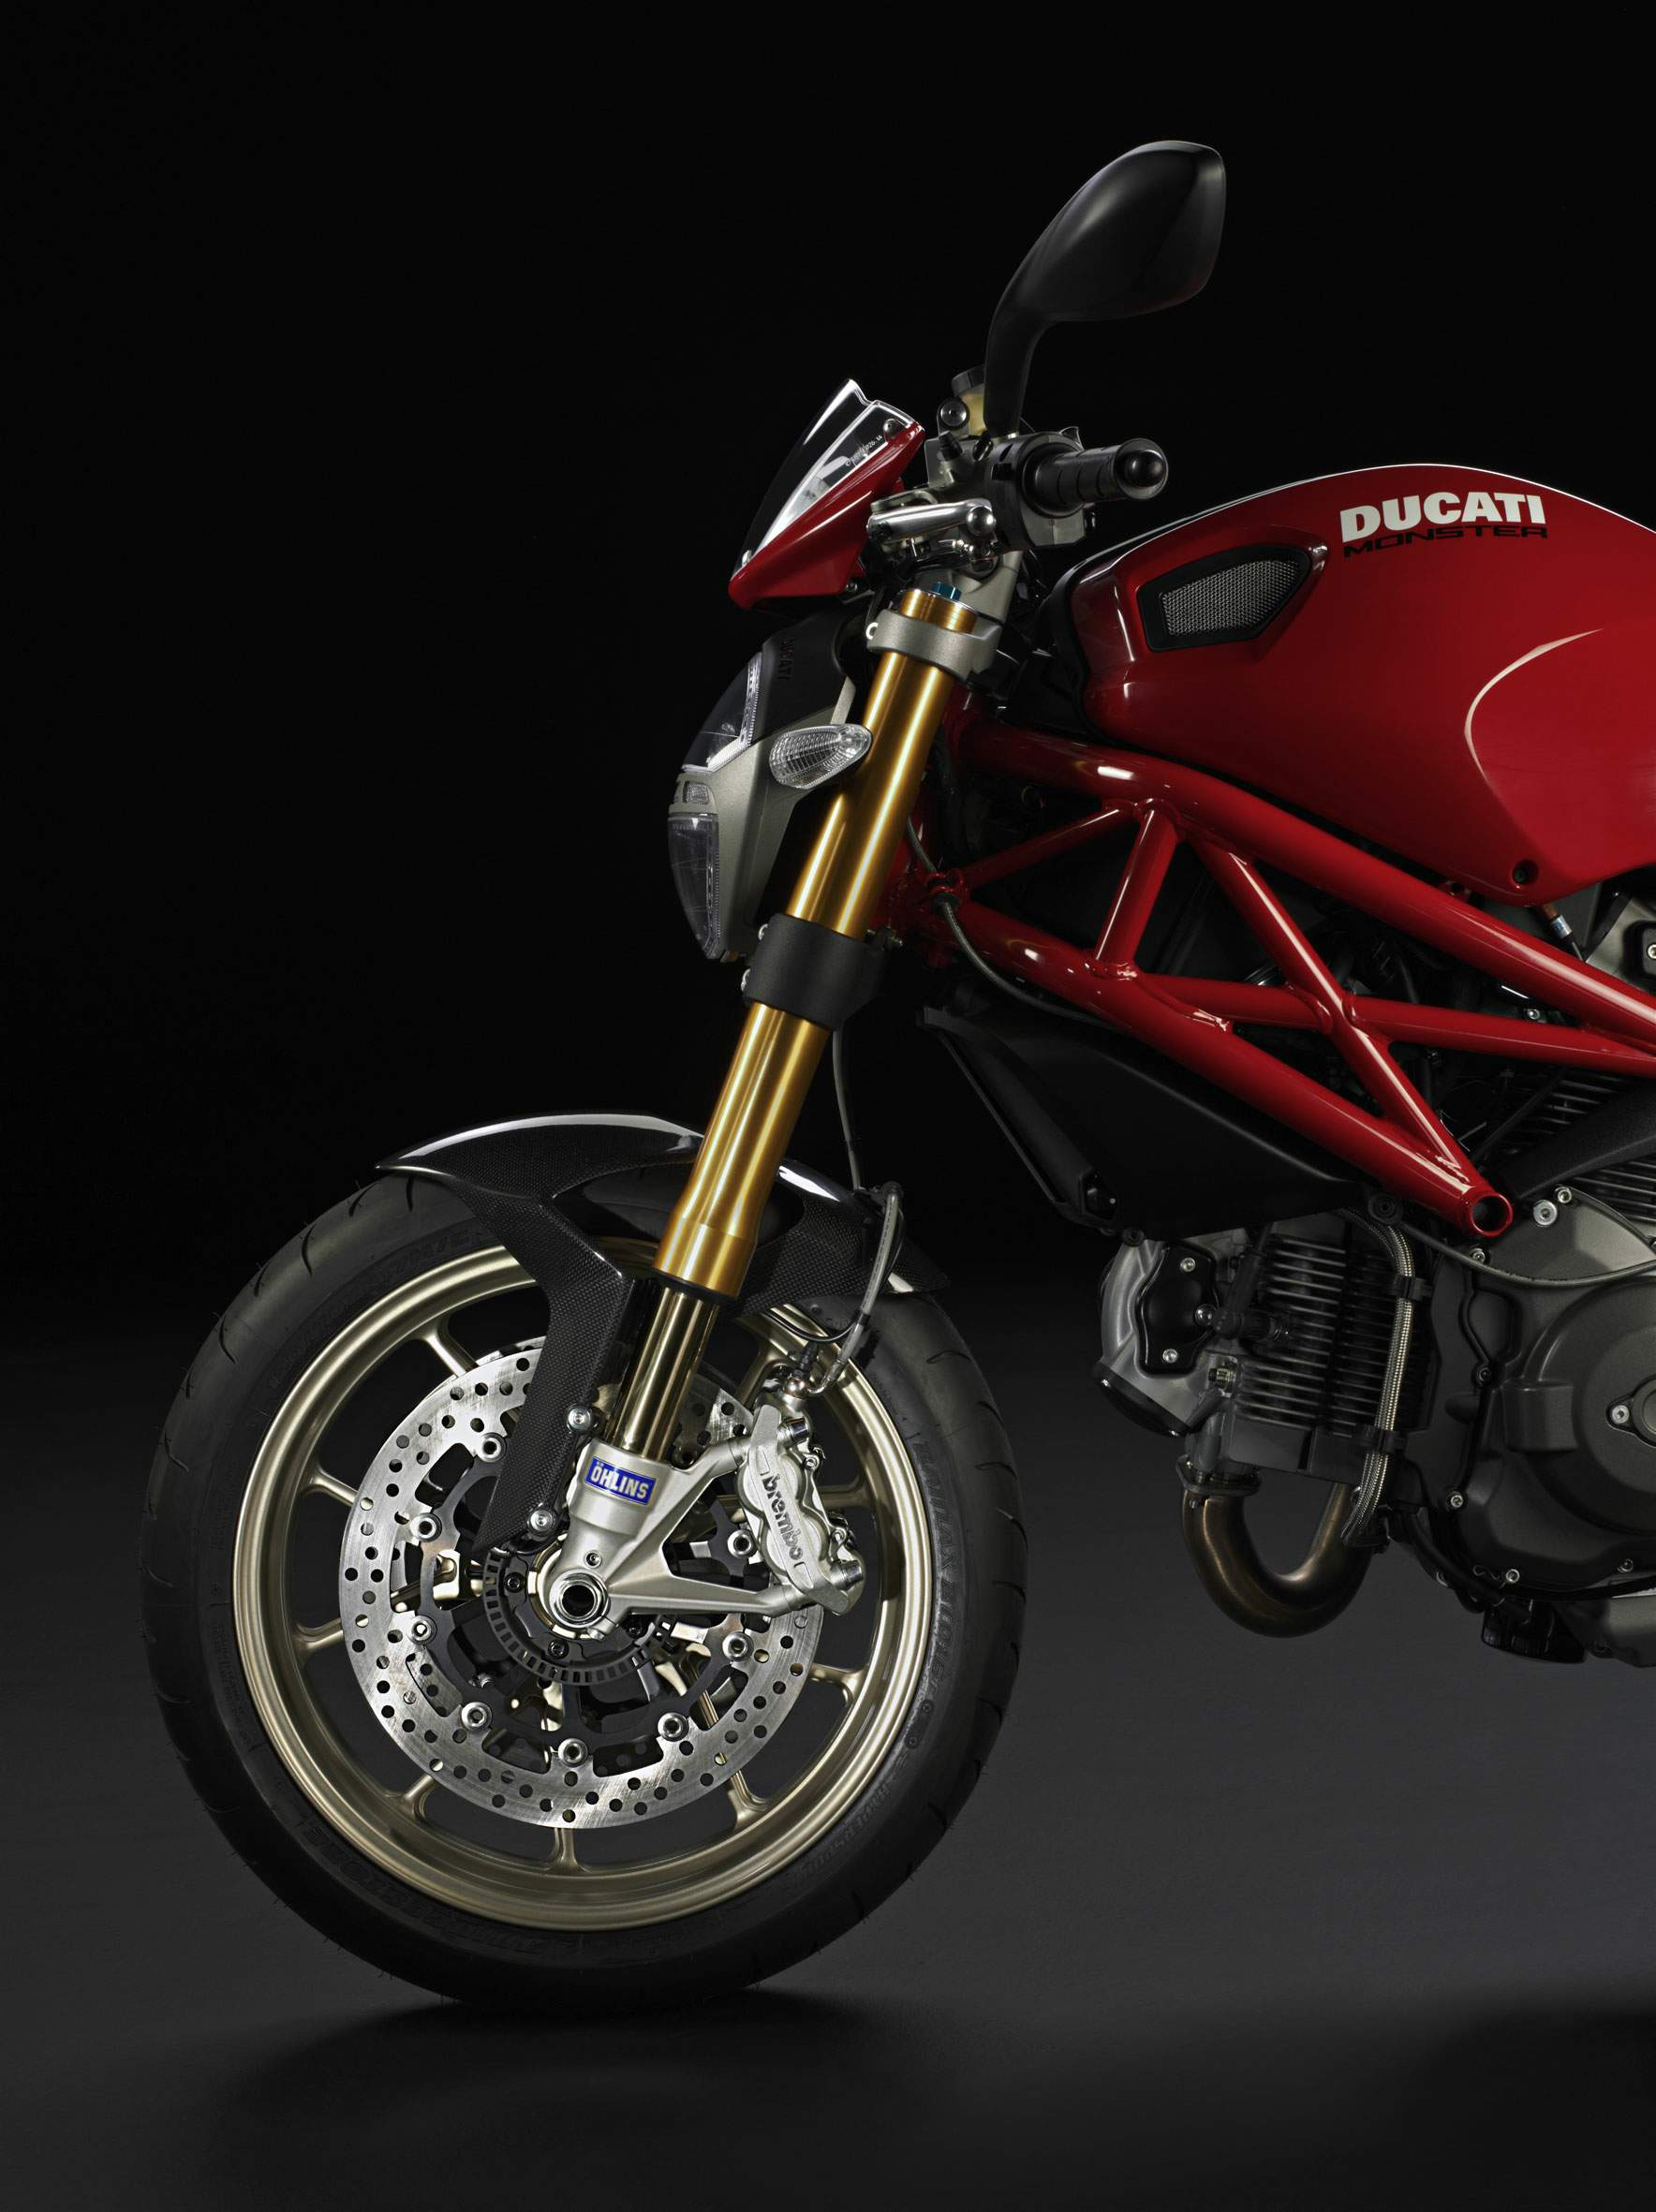 ducati monster 1100s specs 2010 2011 autoevolution. Black Bedroom Furniture Sets. Home Design Ideas